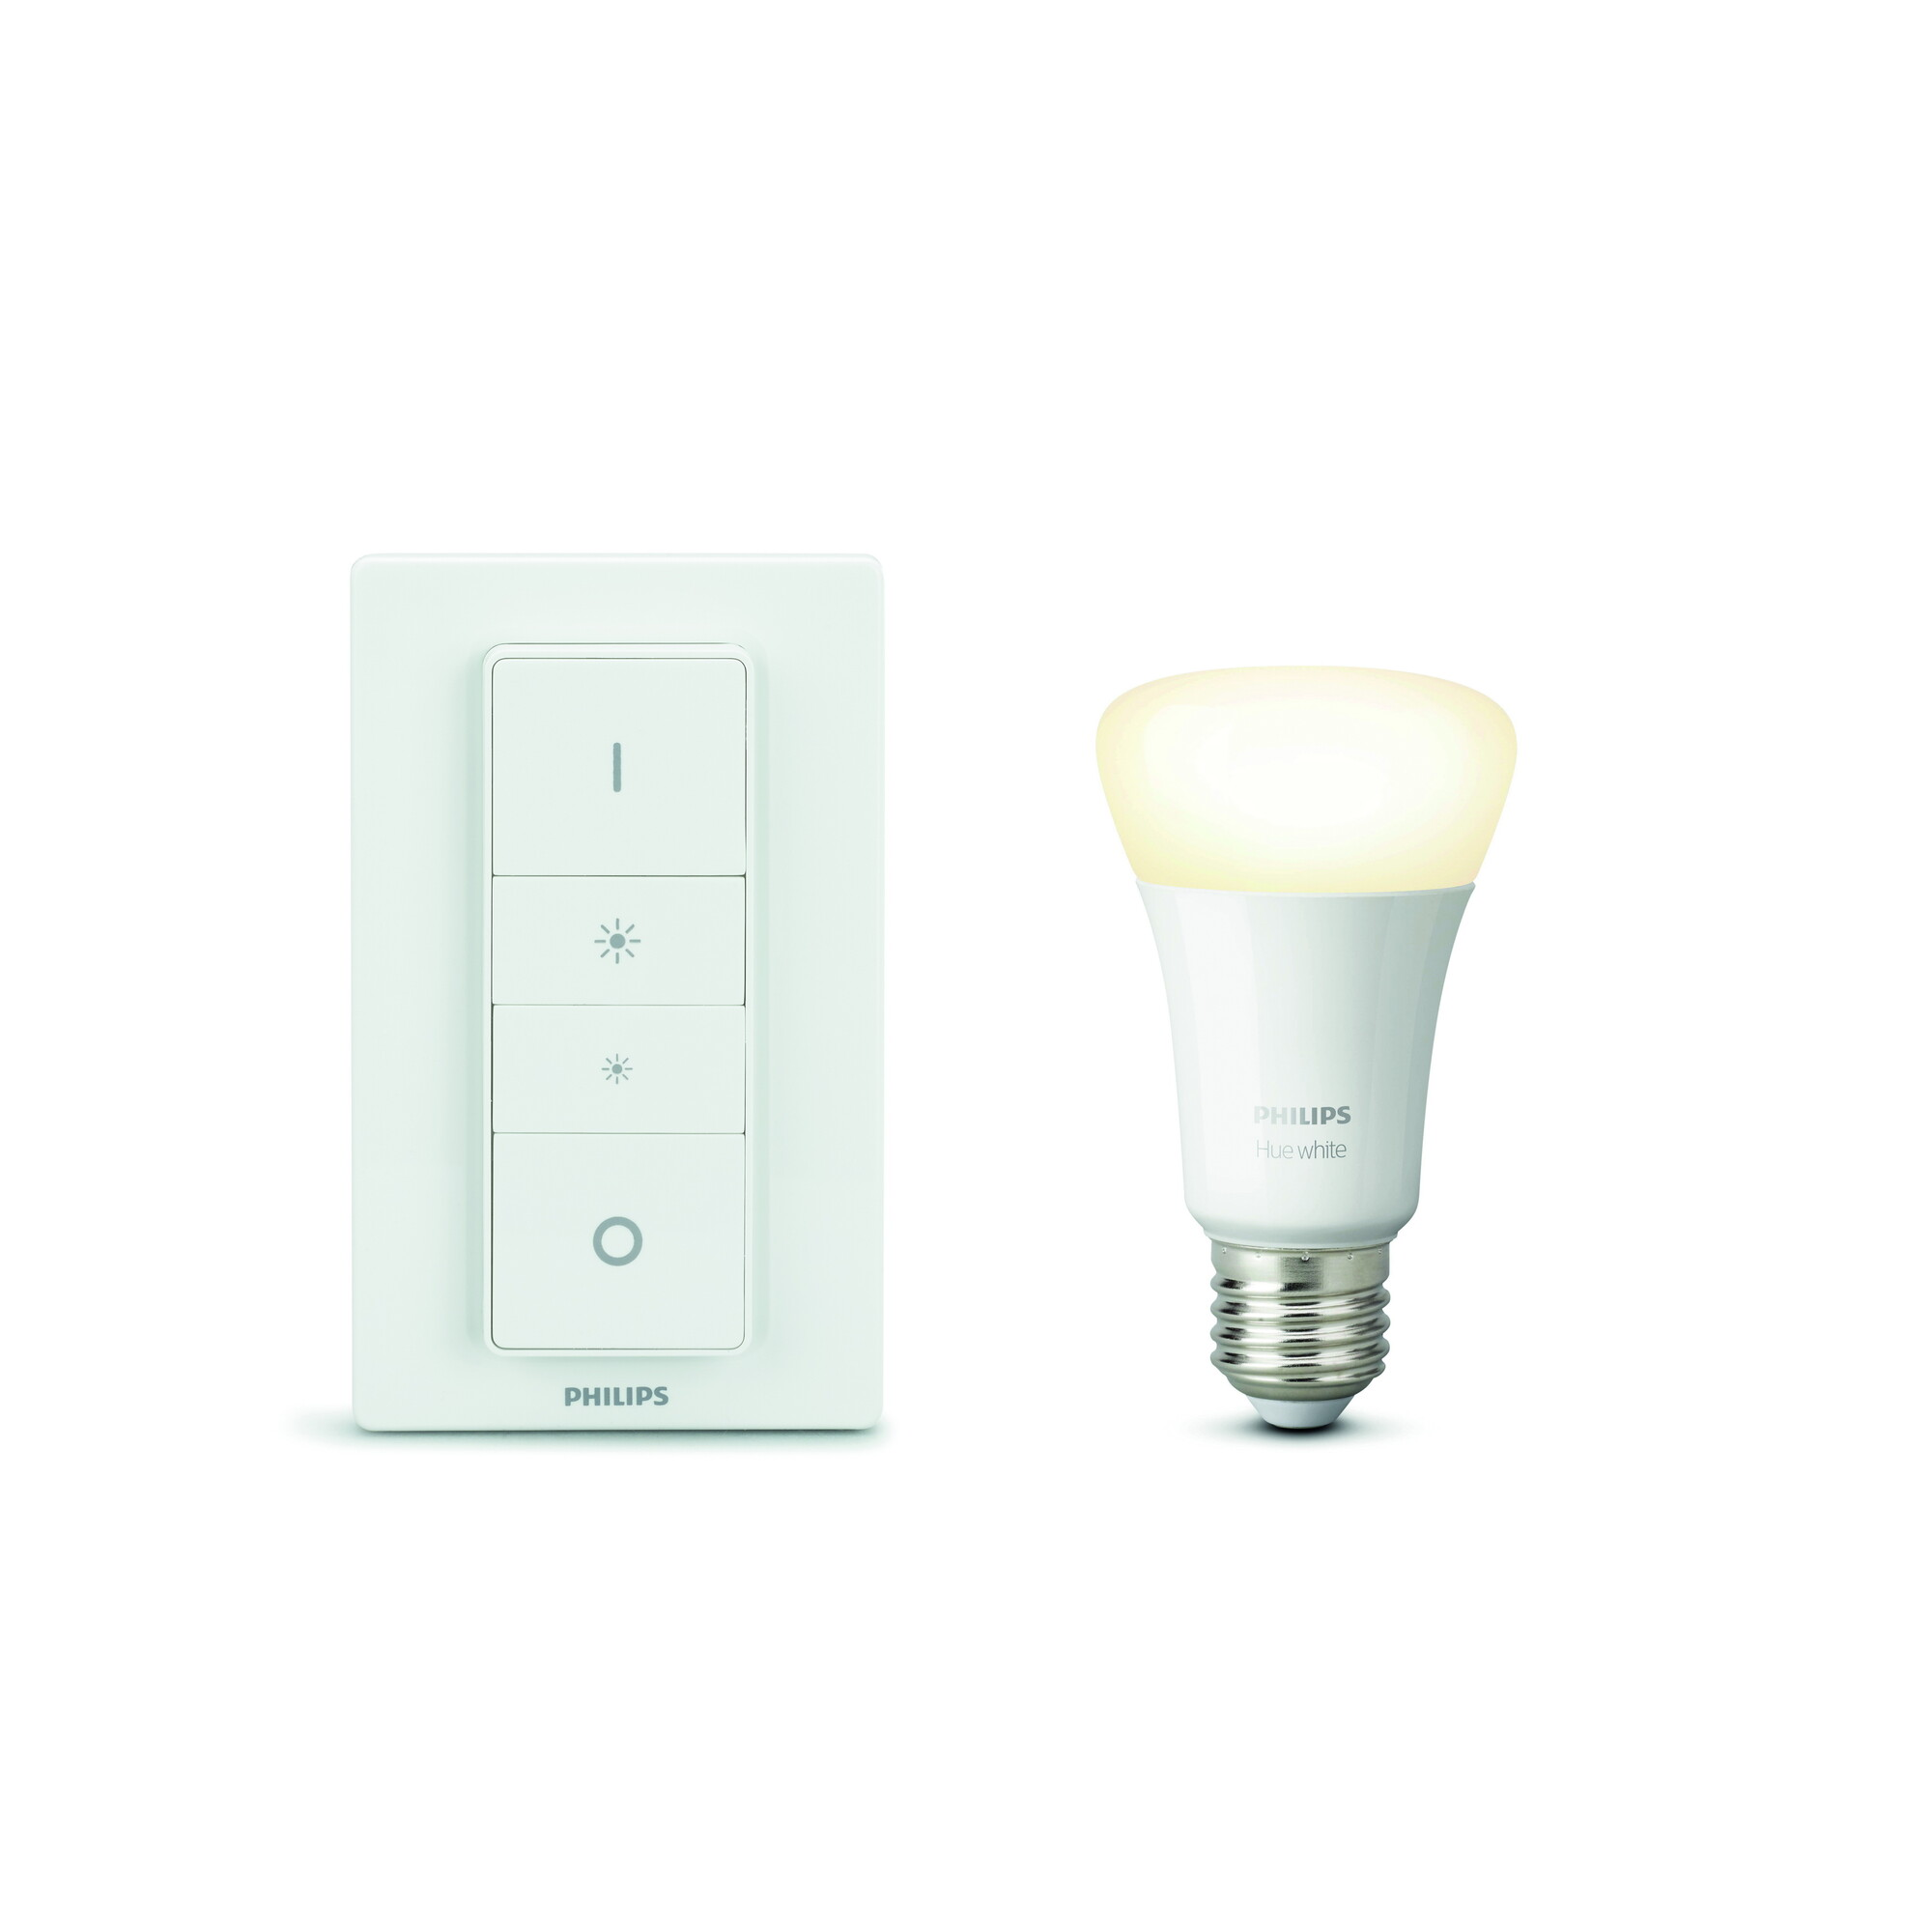 Philips HUE White E27 9,5W 806lm 2700K Ampoule Opaque